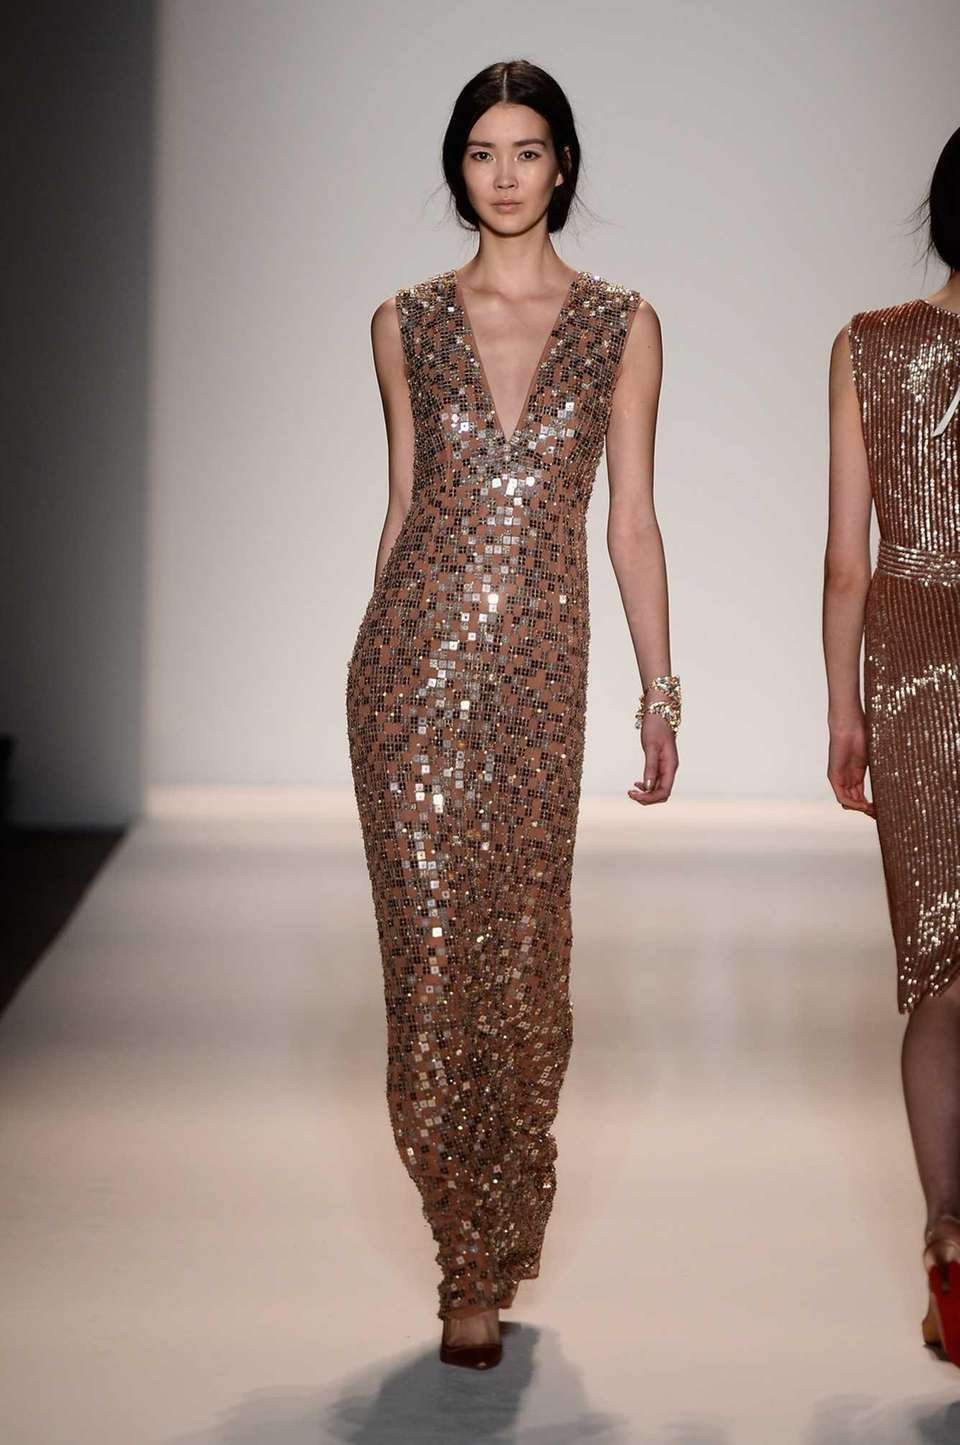 Jenny Packham's Fall 2013 fashion show during Mercedes-Benz